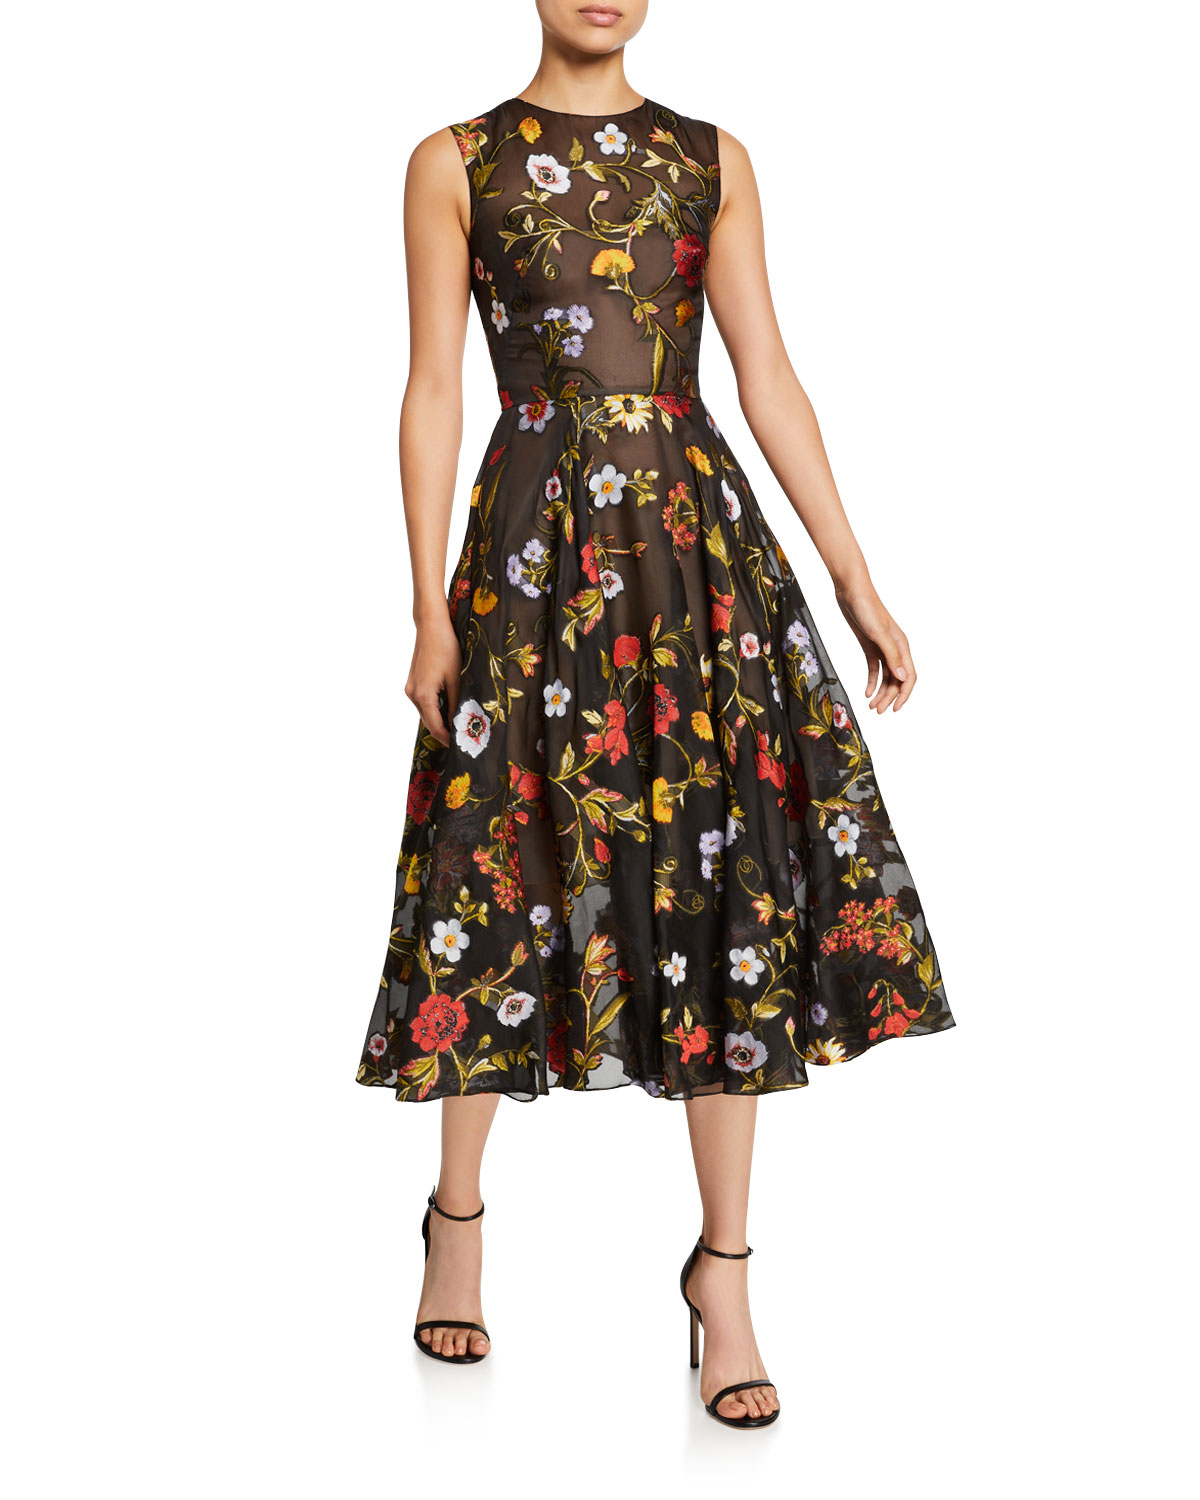 Oscar de la Renta Sleeveless Ikat Floral Embroidered Tulle Day Dress